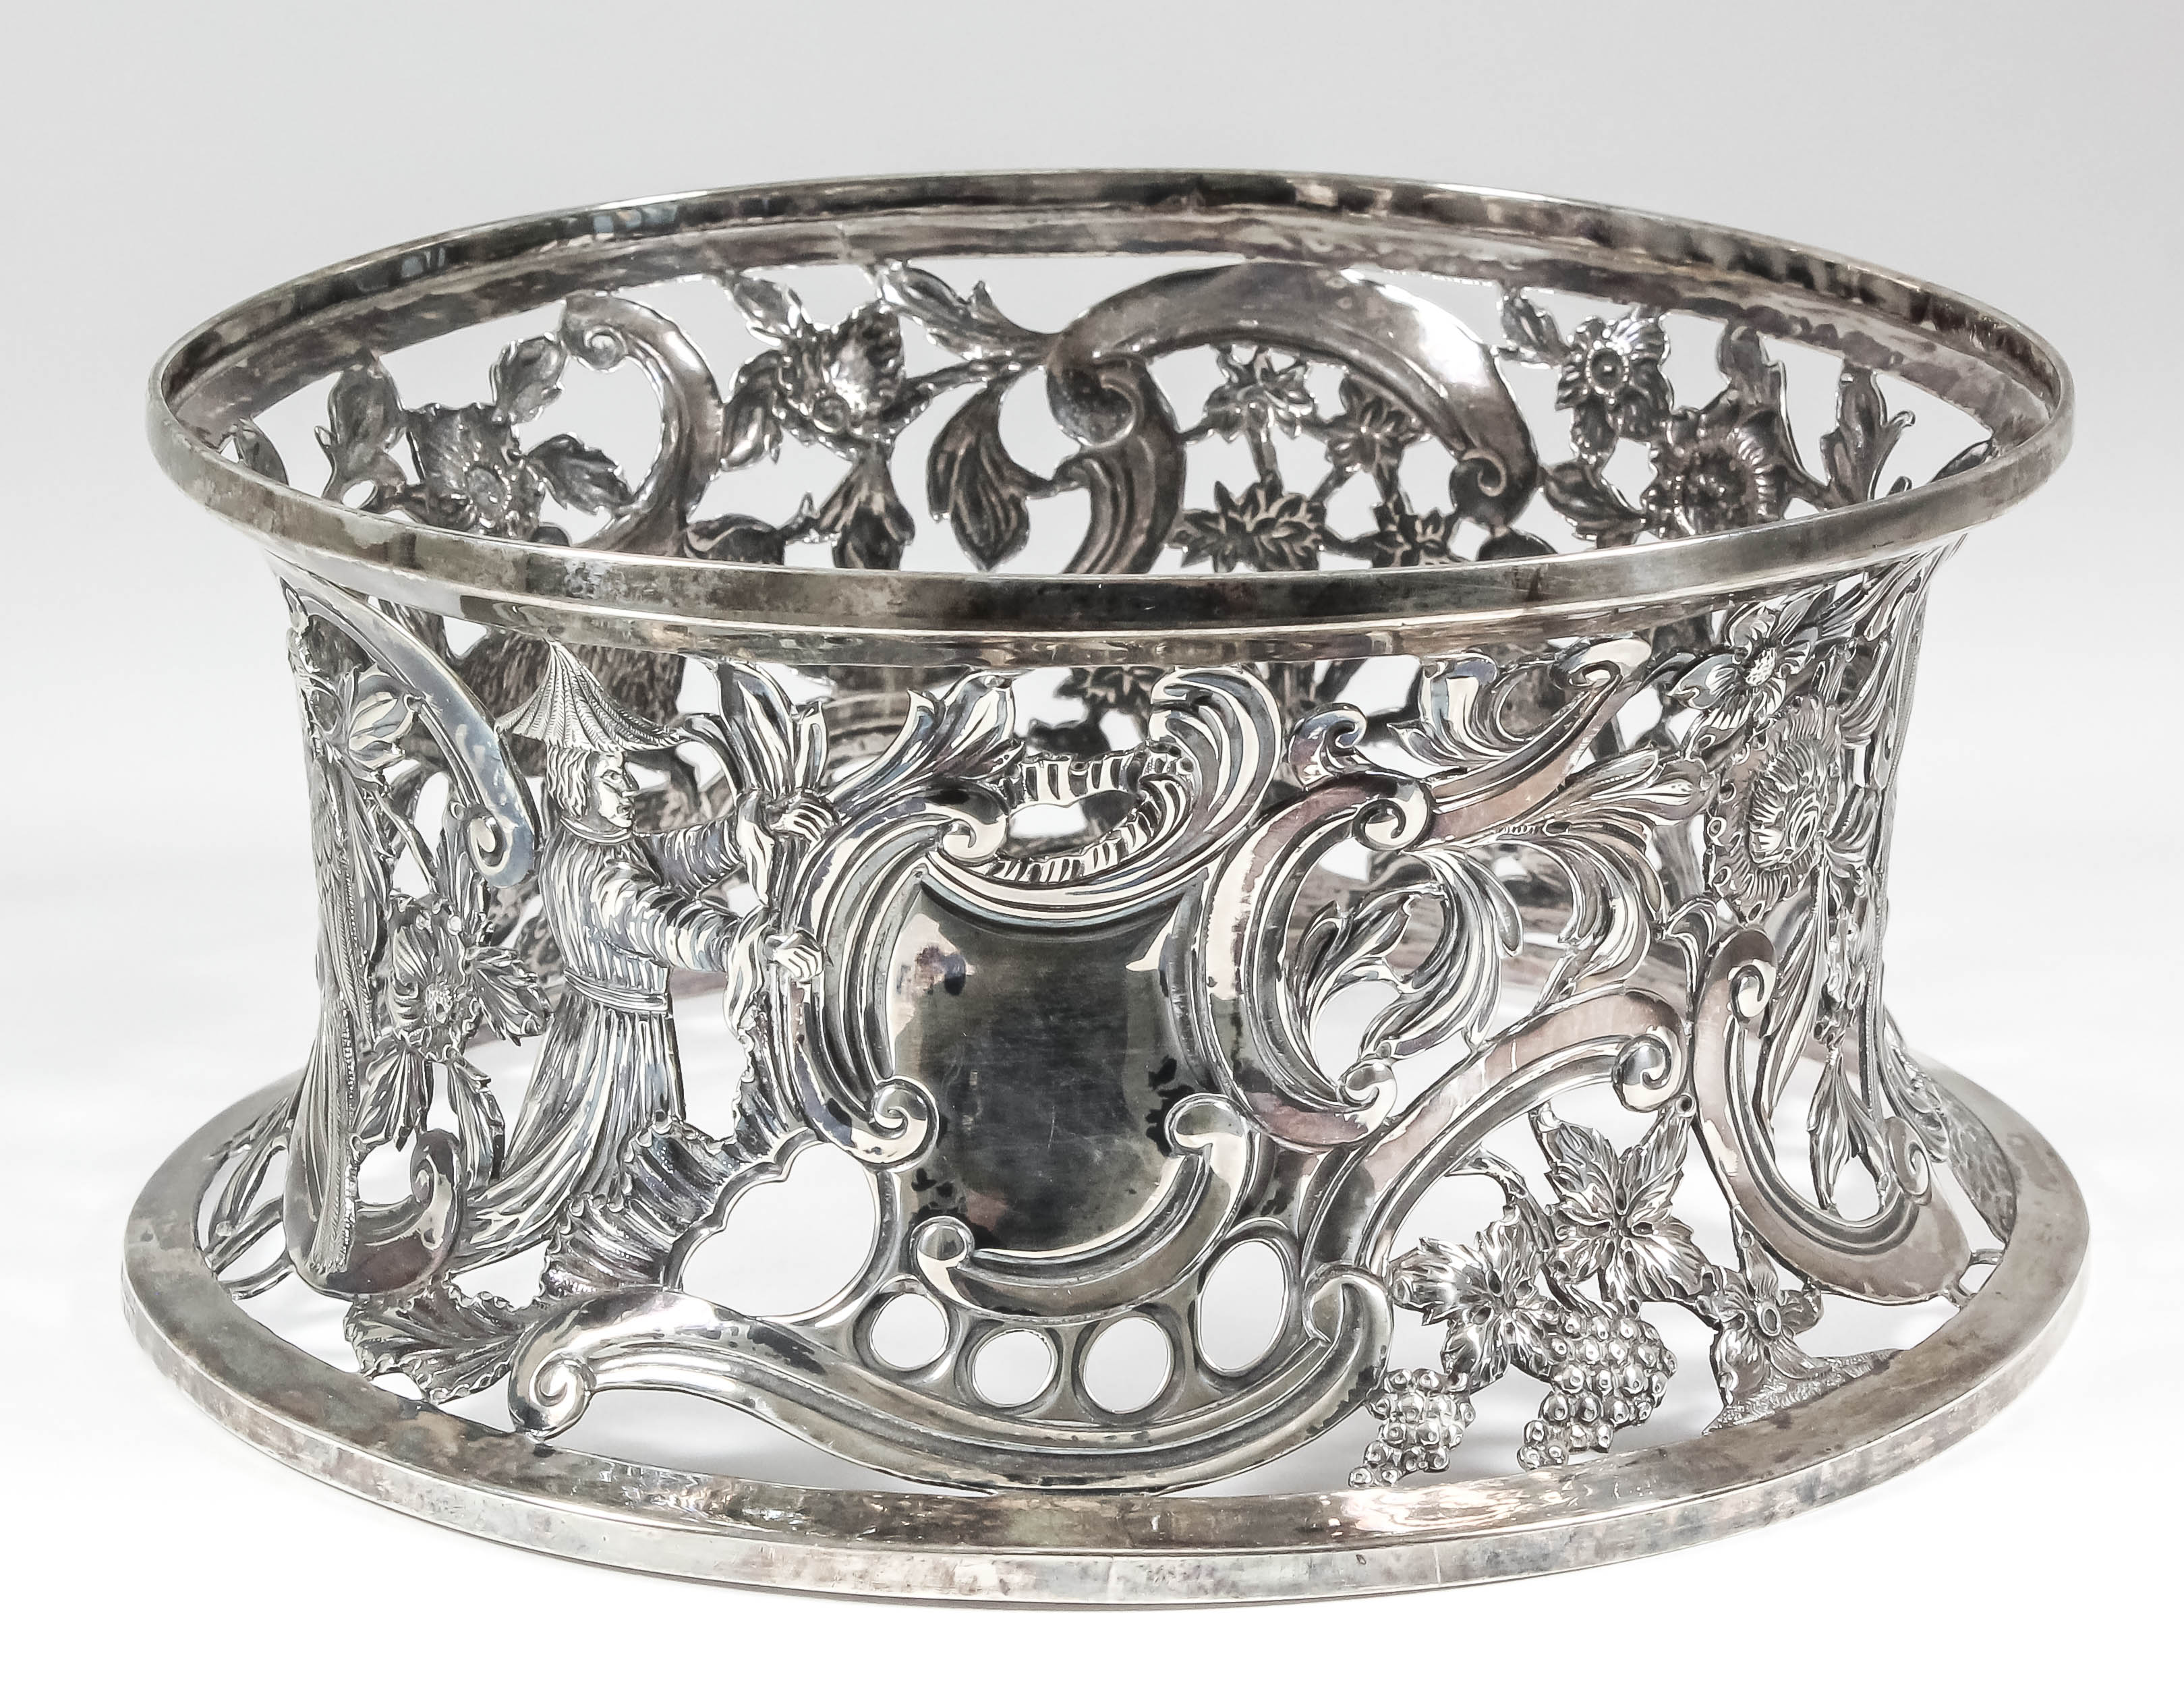 Lot 15 - An Edward VII Irish silver dish ring pierced and embossed with shaped cartouche, figures, animals,